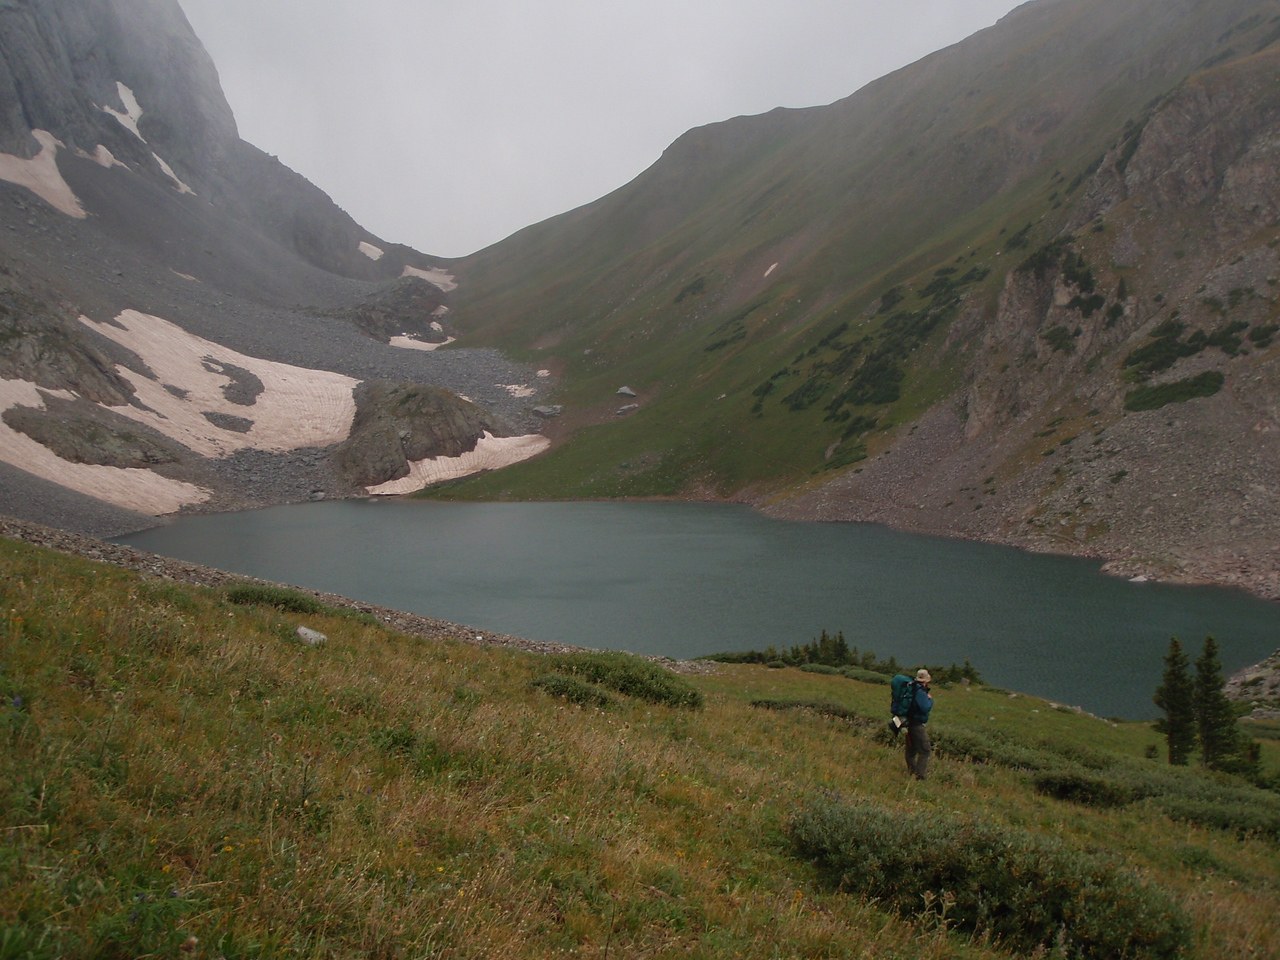 It rained all night, cloudy and overcast in the morning making an attempt at the summit out of the question. Still a fun excursion into Colorado's spectacular backcountry.